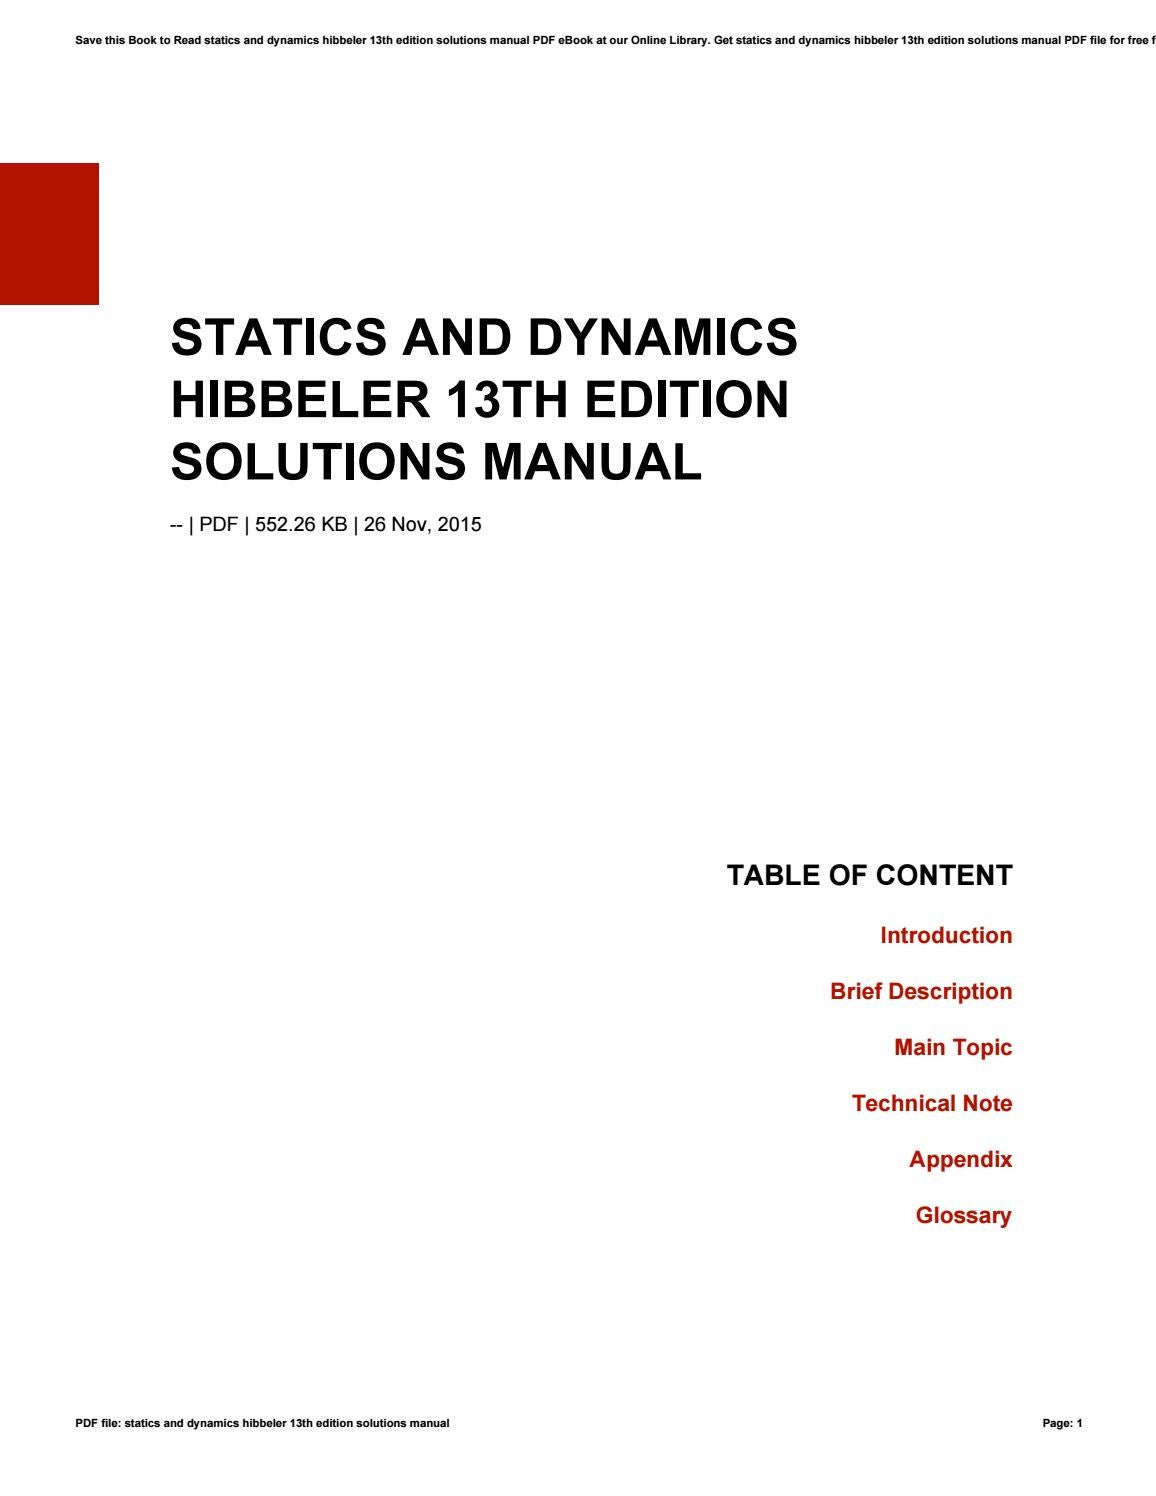 Statics and dynamics hibbeler 13th edition solutions manual by  DarrylStout1514 - issuu